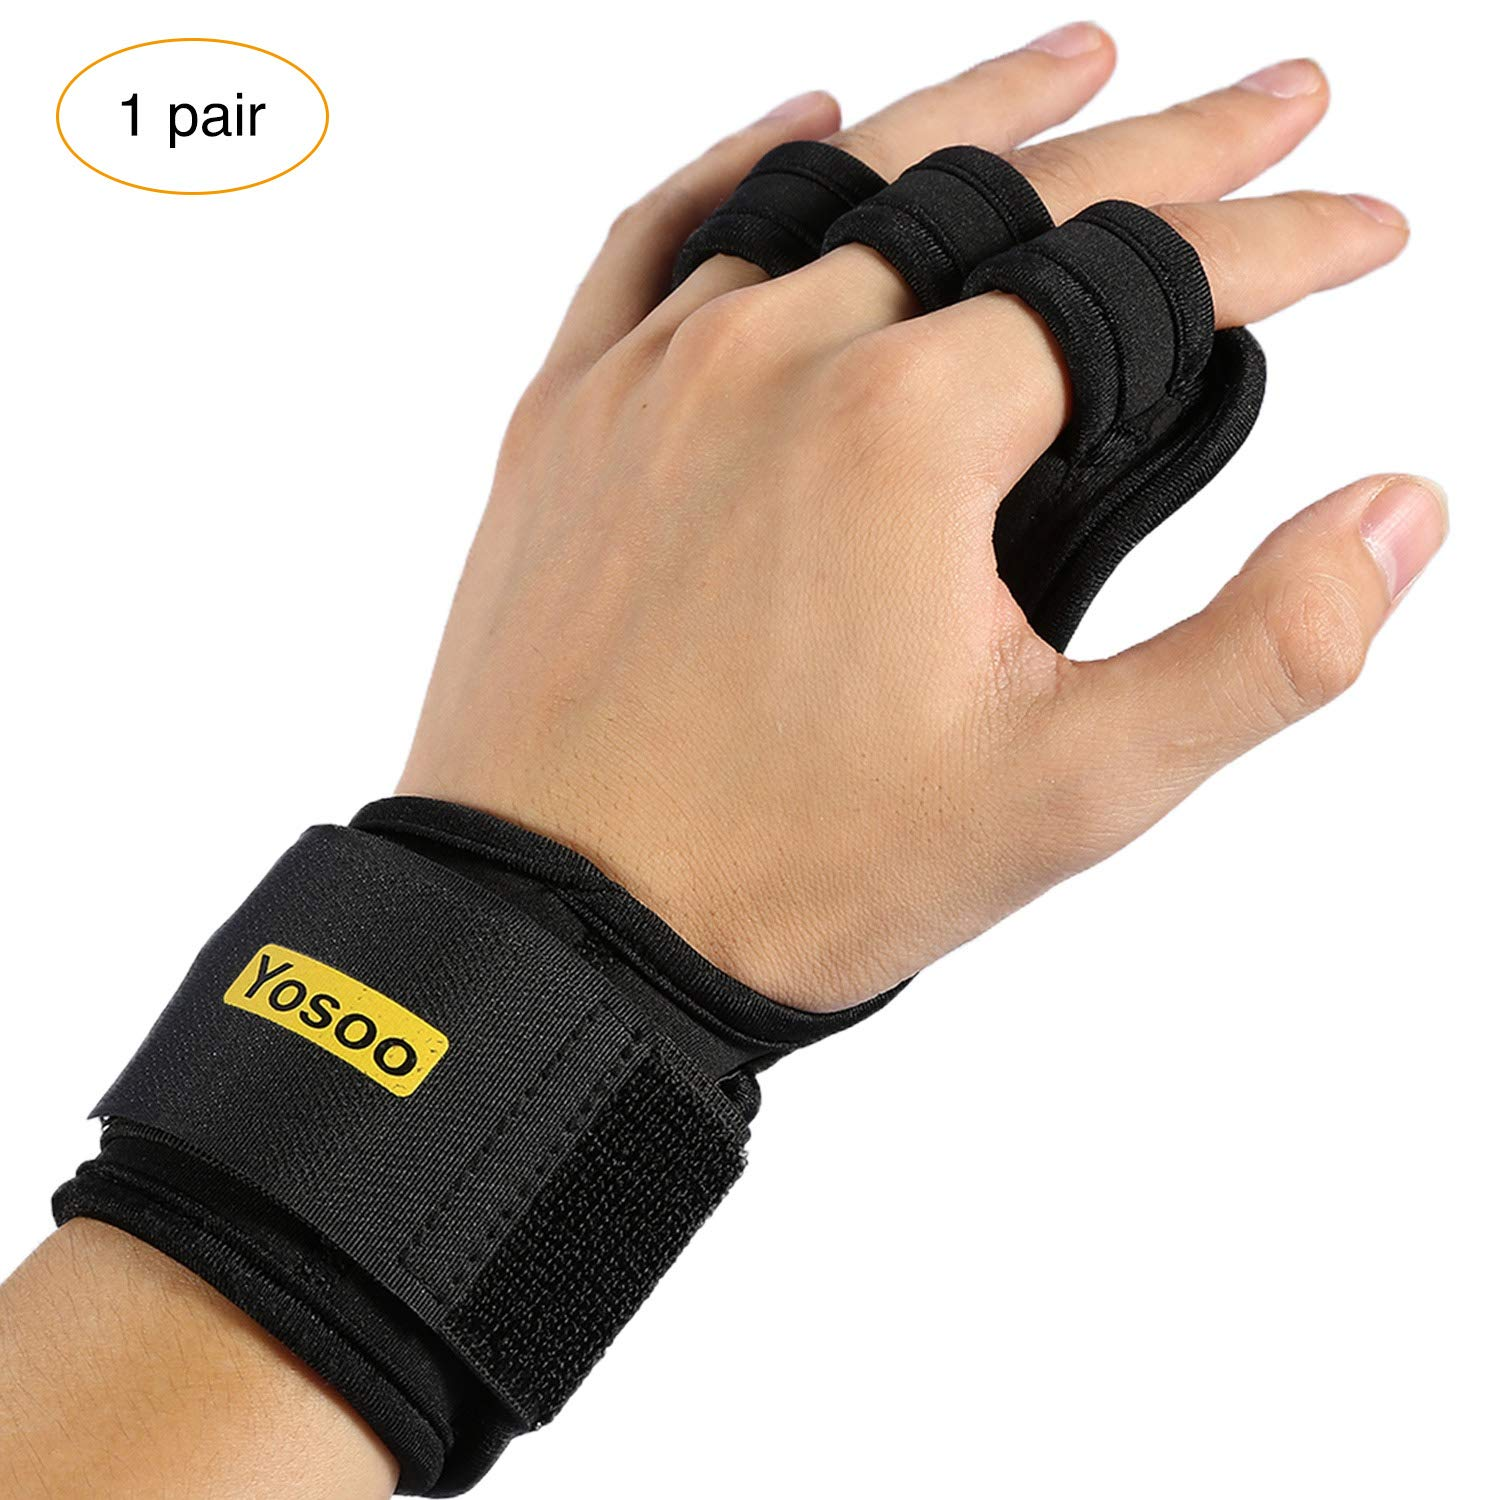 Gym Workout Powerlifting Non-Slip Gymnastics Grips Wrist Support for WODs VGEBY 1Pair Cross Training Gloves